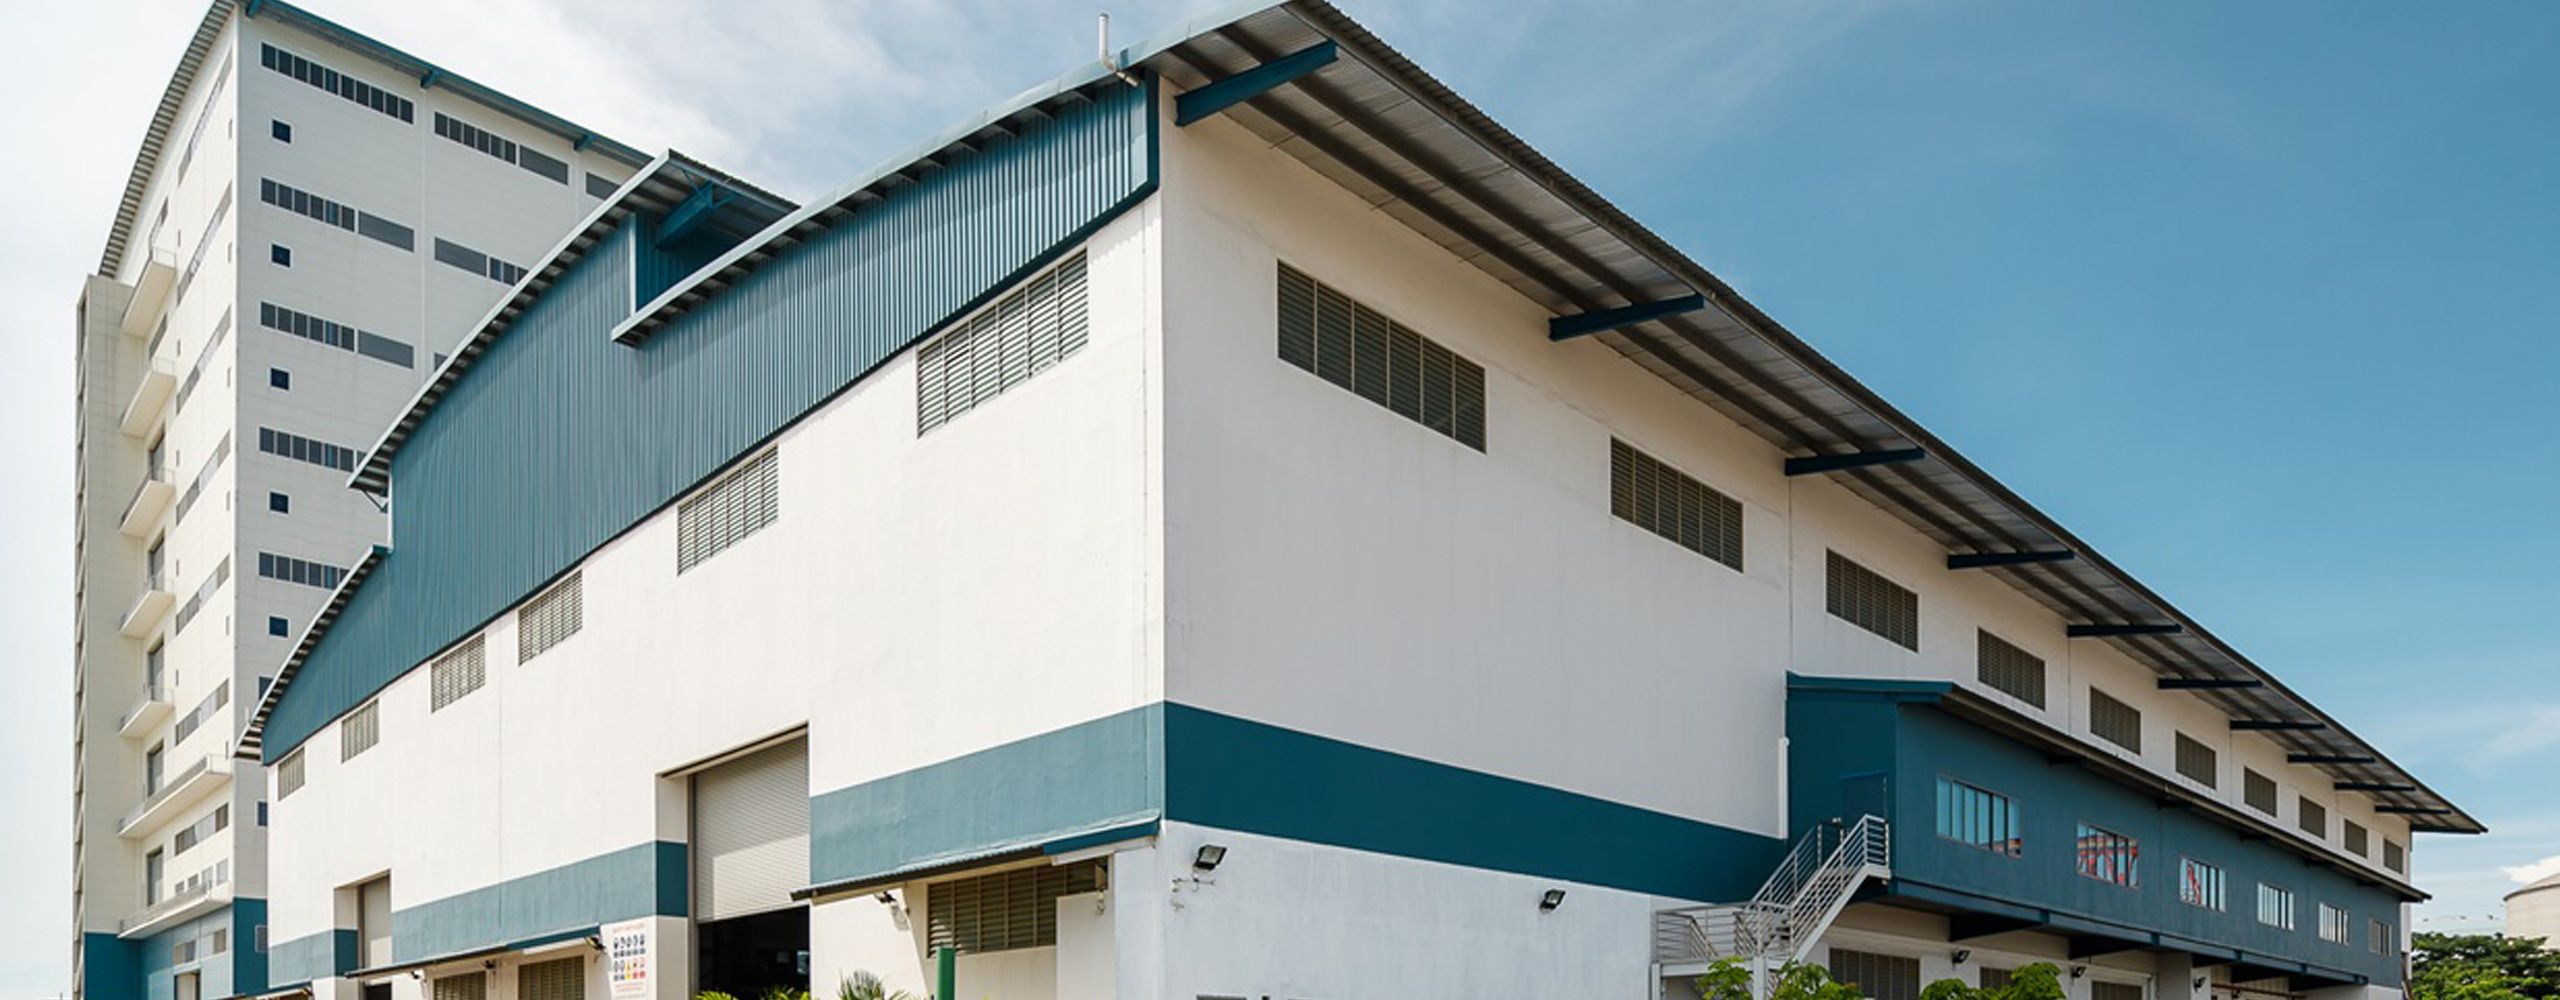 ESR-REIT's 8 Tuas South Lane. (Photo: ESR-REIT)